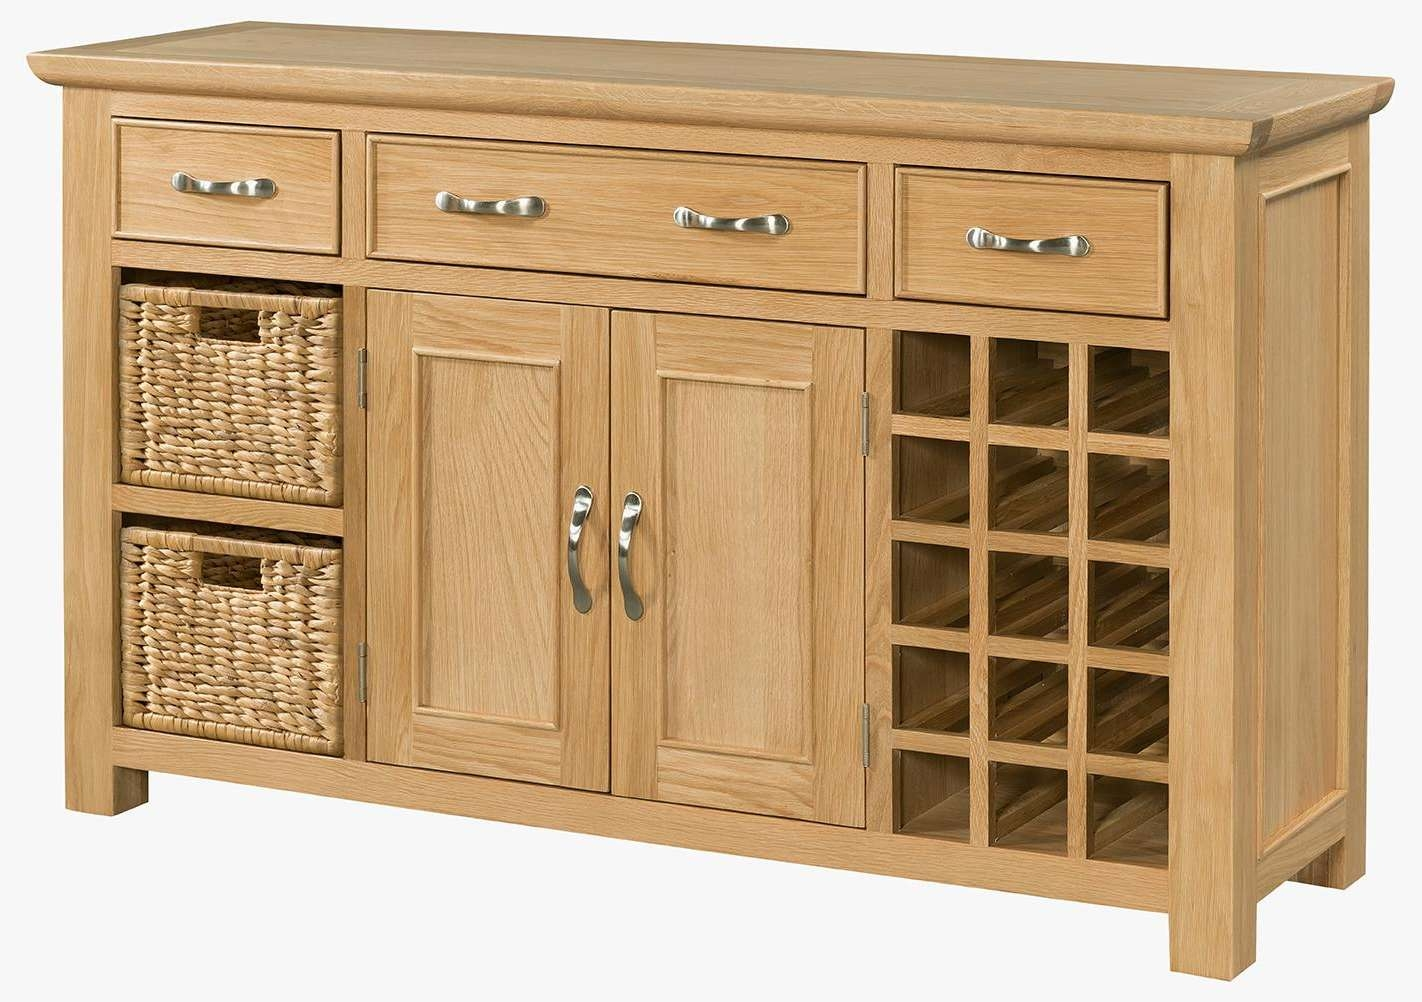 Oak Large Sideboard With Wine Rack (sie054) – Solid Wood & Painted Within Sideboards With Wine Rack (View 6 of 20)